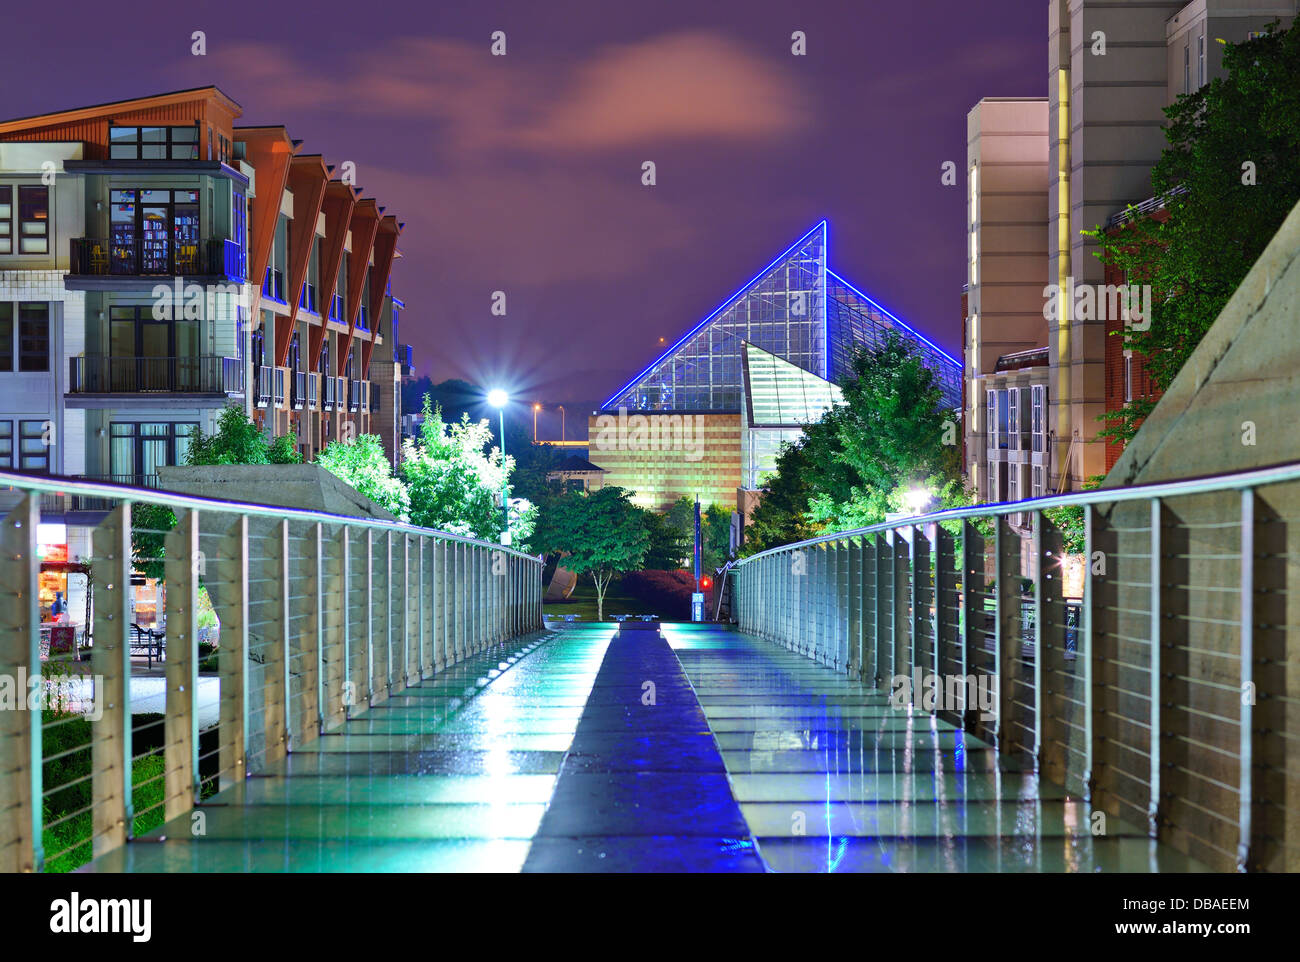 Urban scene in downtown Chattanooga, Tennessee, USA. - Stock Image